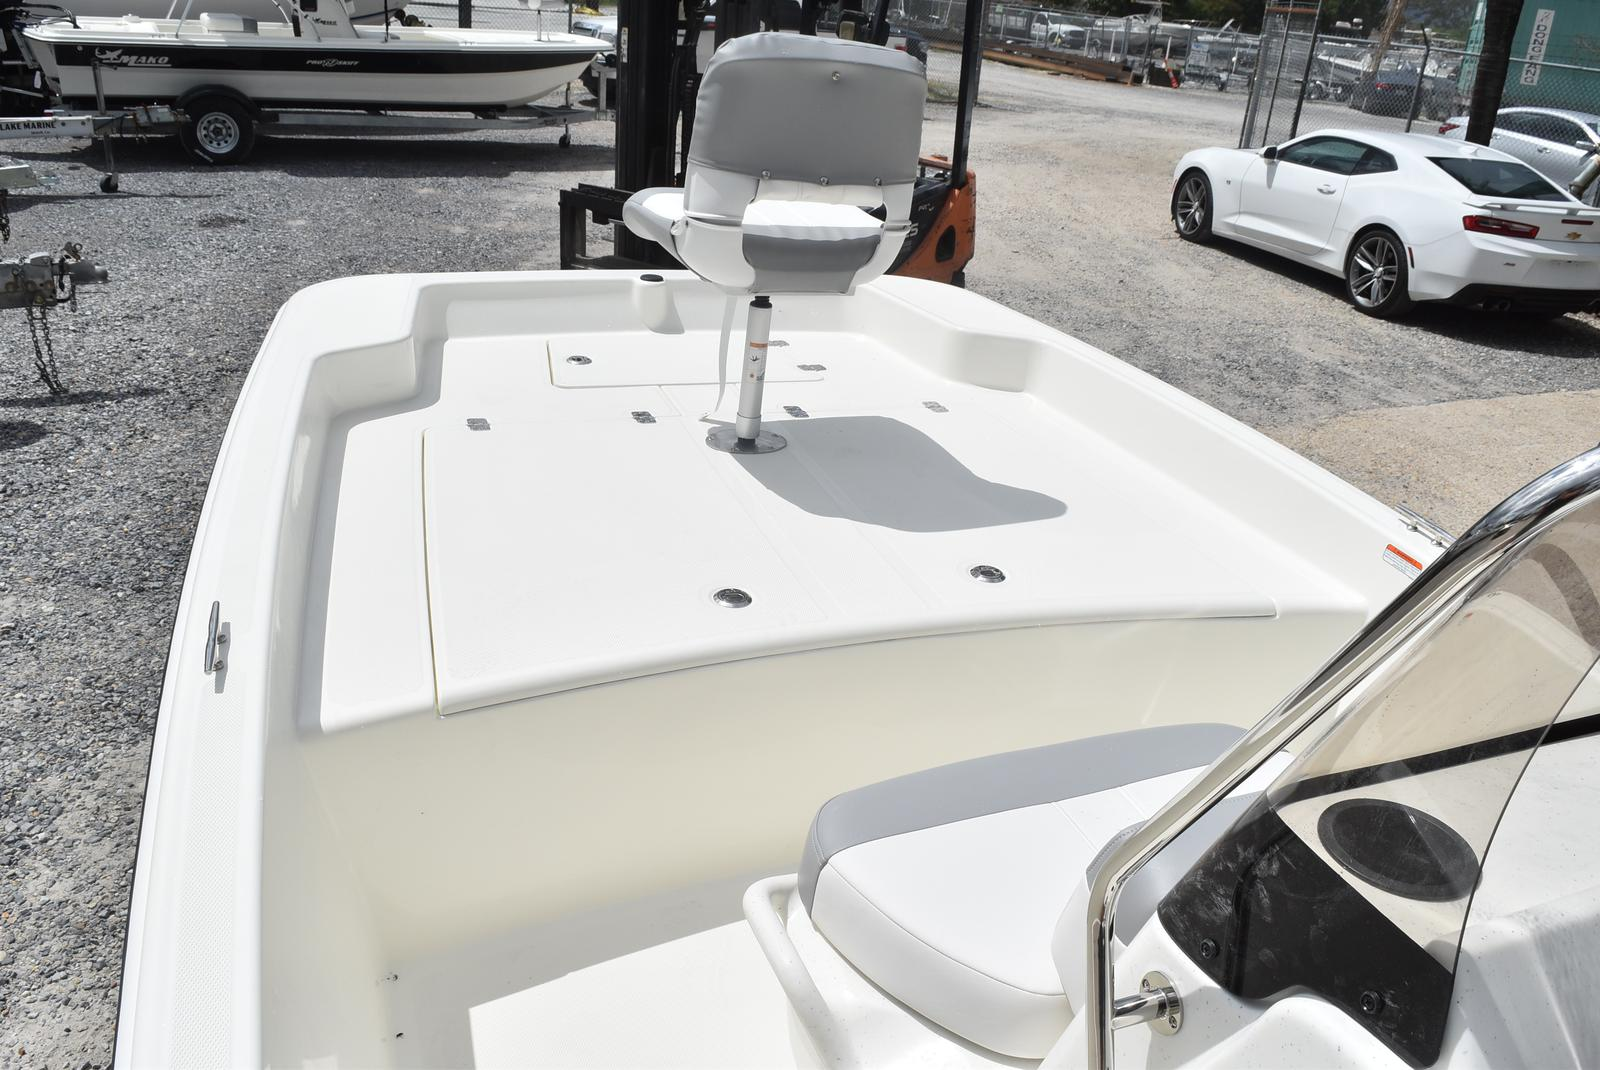 2020 Mako boat for sale, model of the boat is Pro Skiff 17, 75 ELPT & Image # 447 of 702